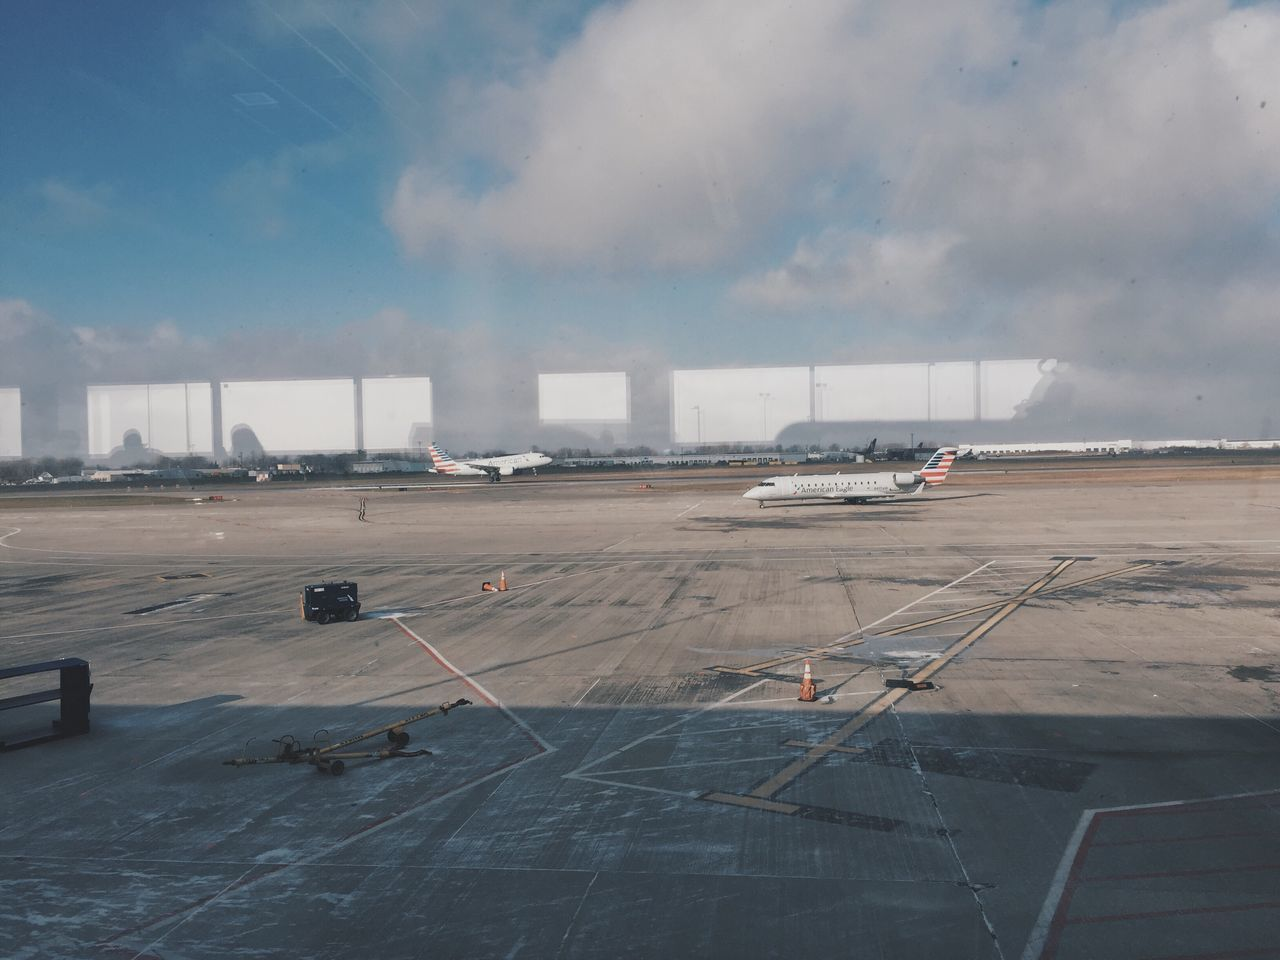 airplane, airport runway, airport, transportation, air vehicle, passenger boarding bridge, cloud - sky, runway, sky, mode of transport, day, commercial airplane, no people, outdoors